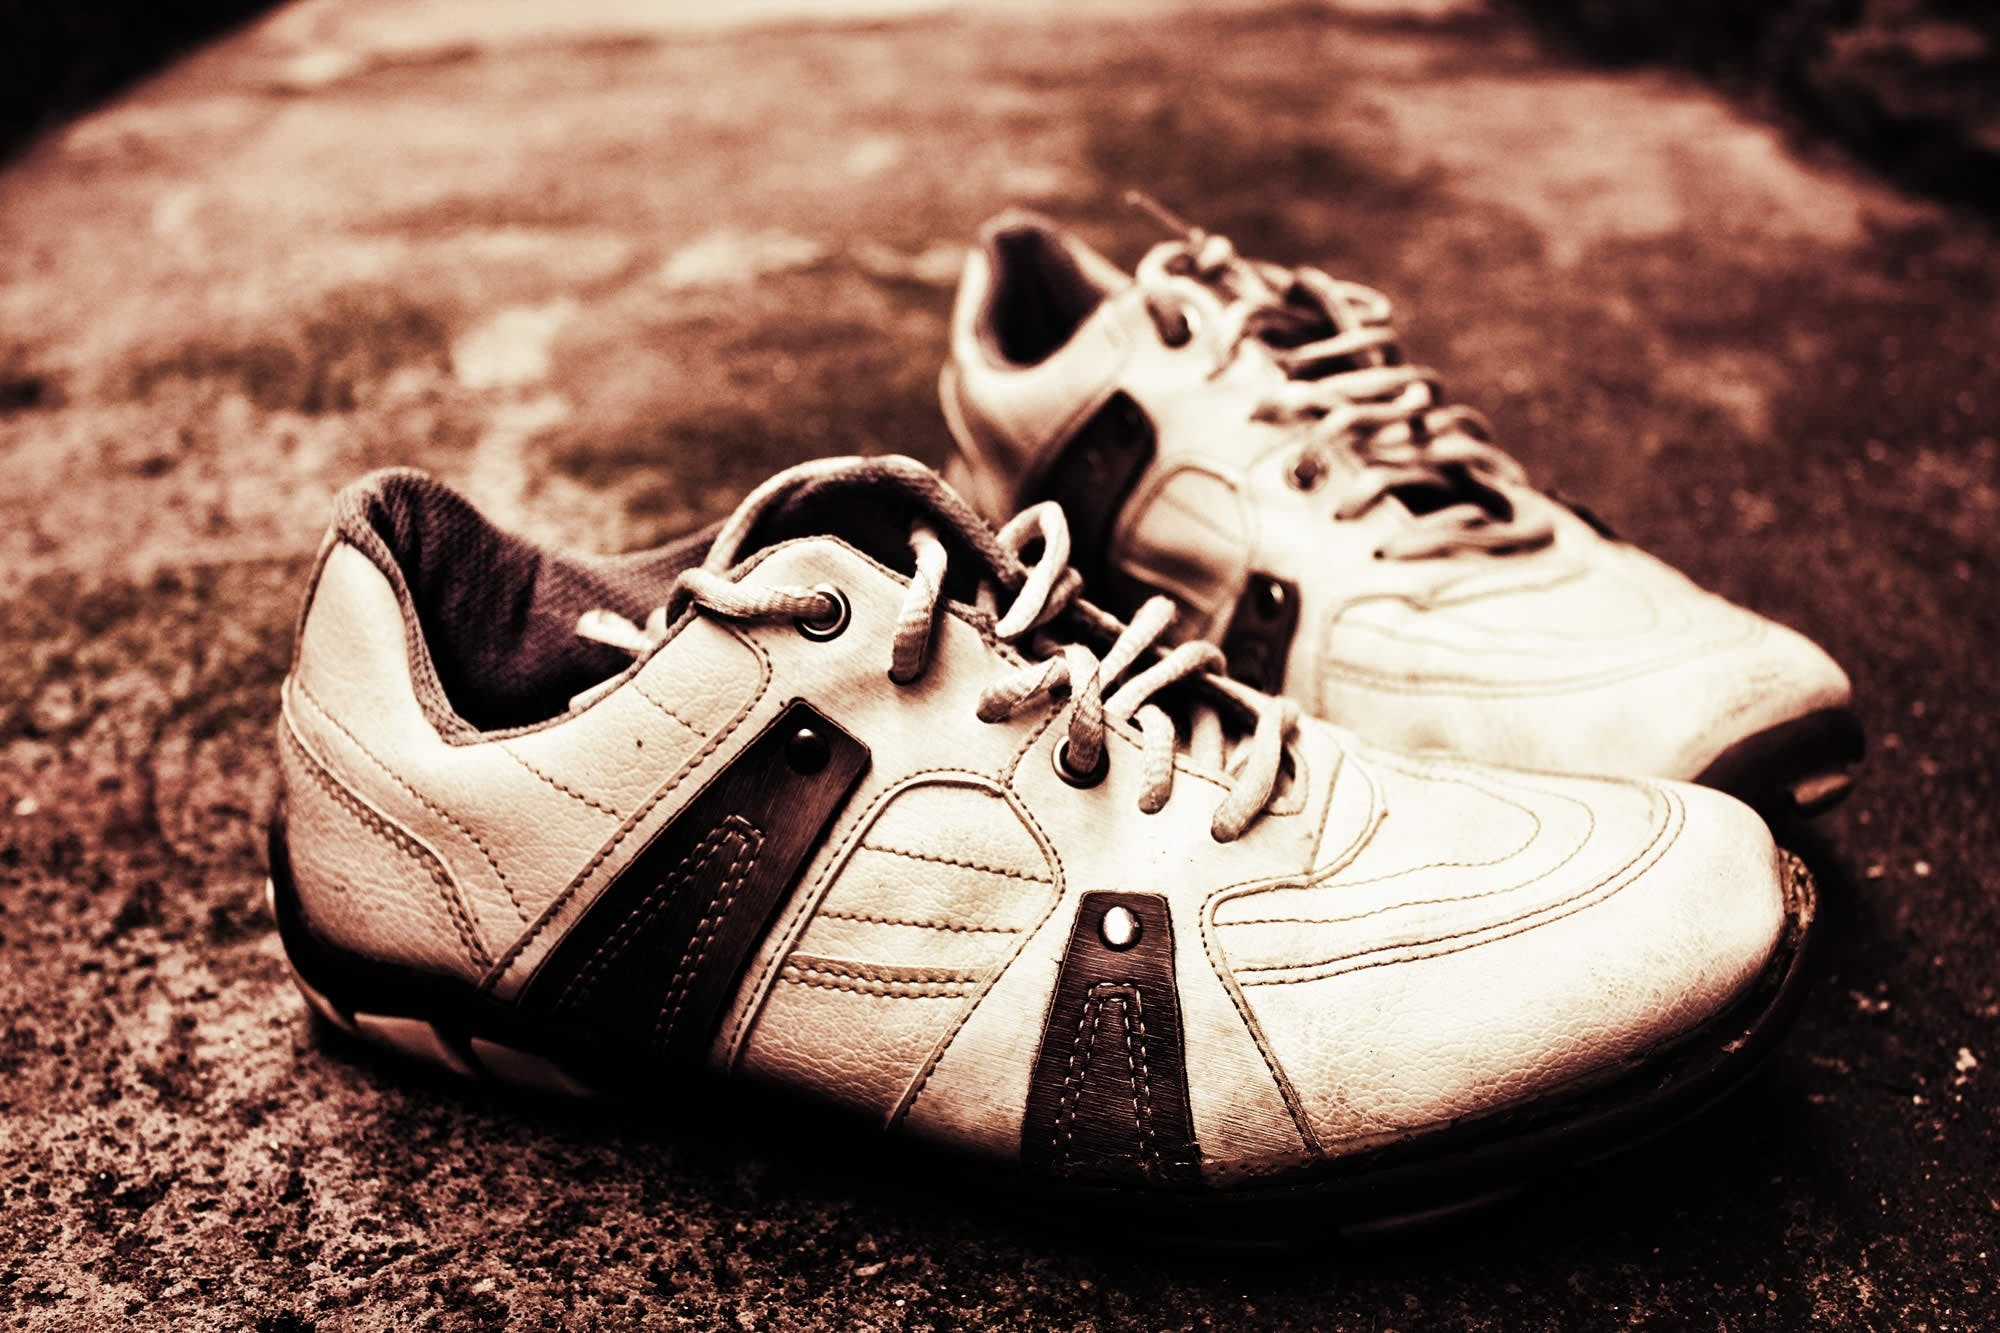 Free stock photo of footwear, shoelace, shoes, tennis